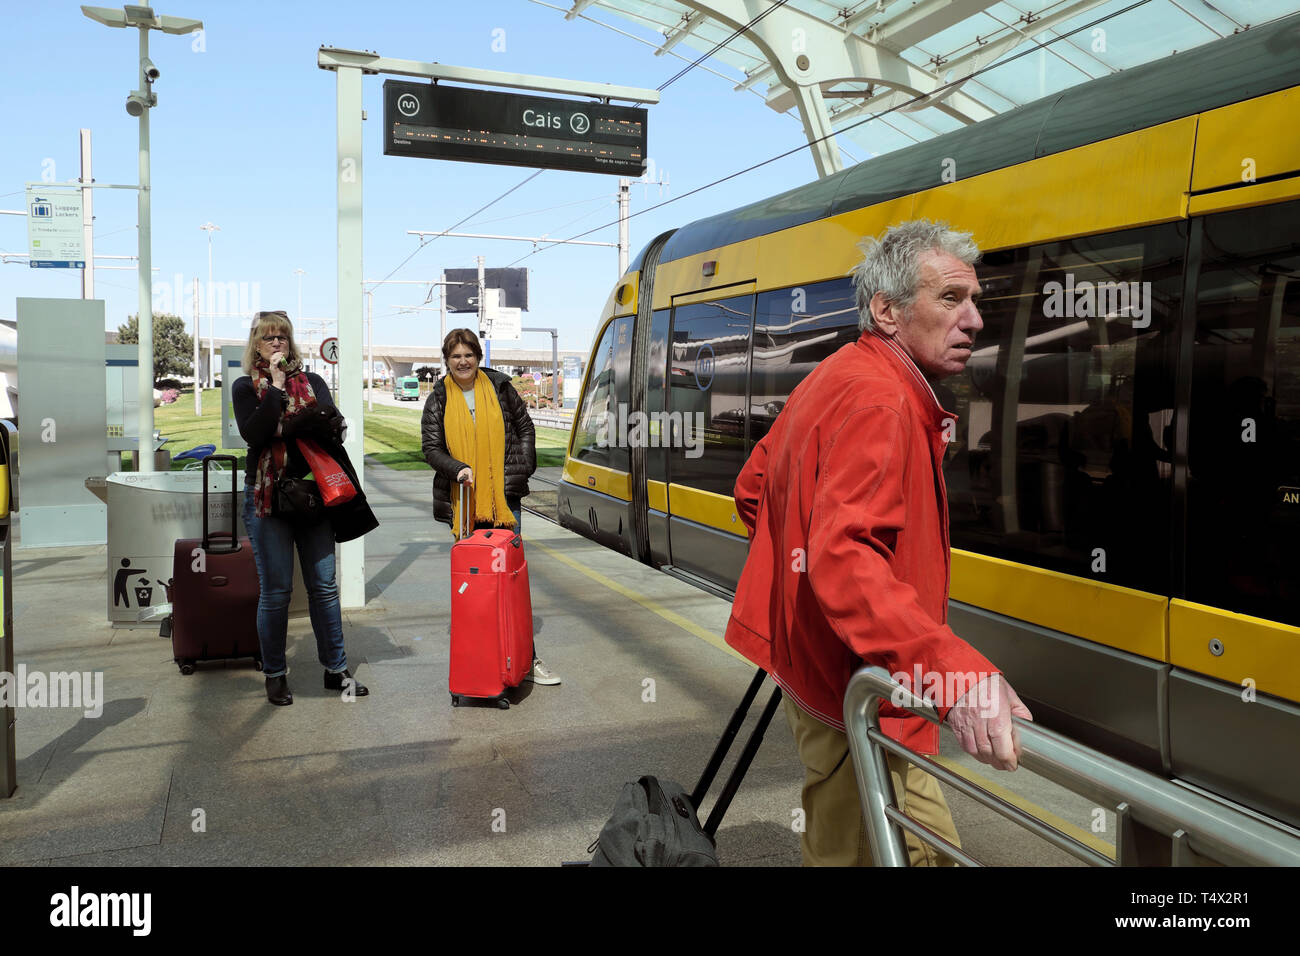 Passengers with luggage waiting on train platform at Francisco Sa Carneiro airport for the Metro to travel to centre of Porto Portugal  KATHY DEWITT - Stock Image